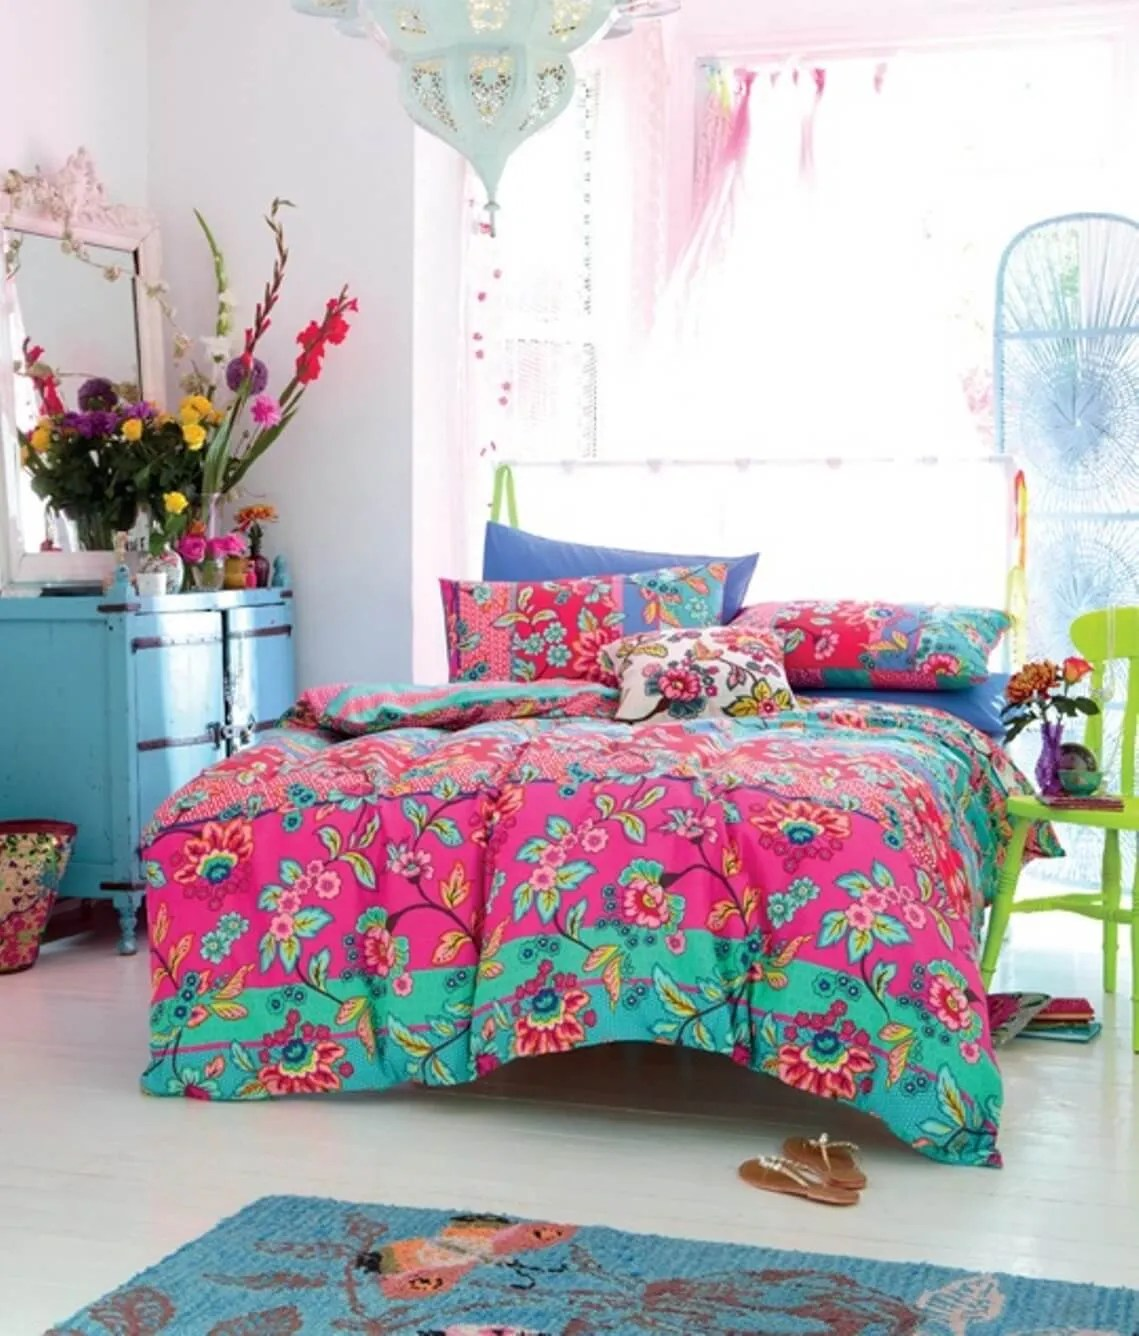 8 Bohemian Chic Teen Girl's Bedroom Ideas - https ... on Boho Bedroom  id=49764